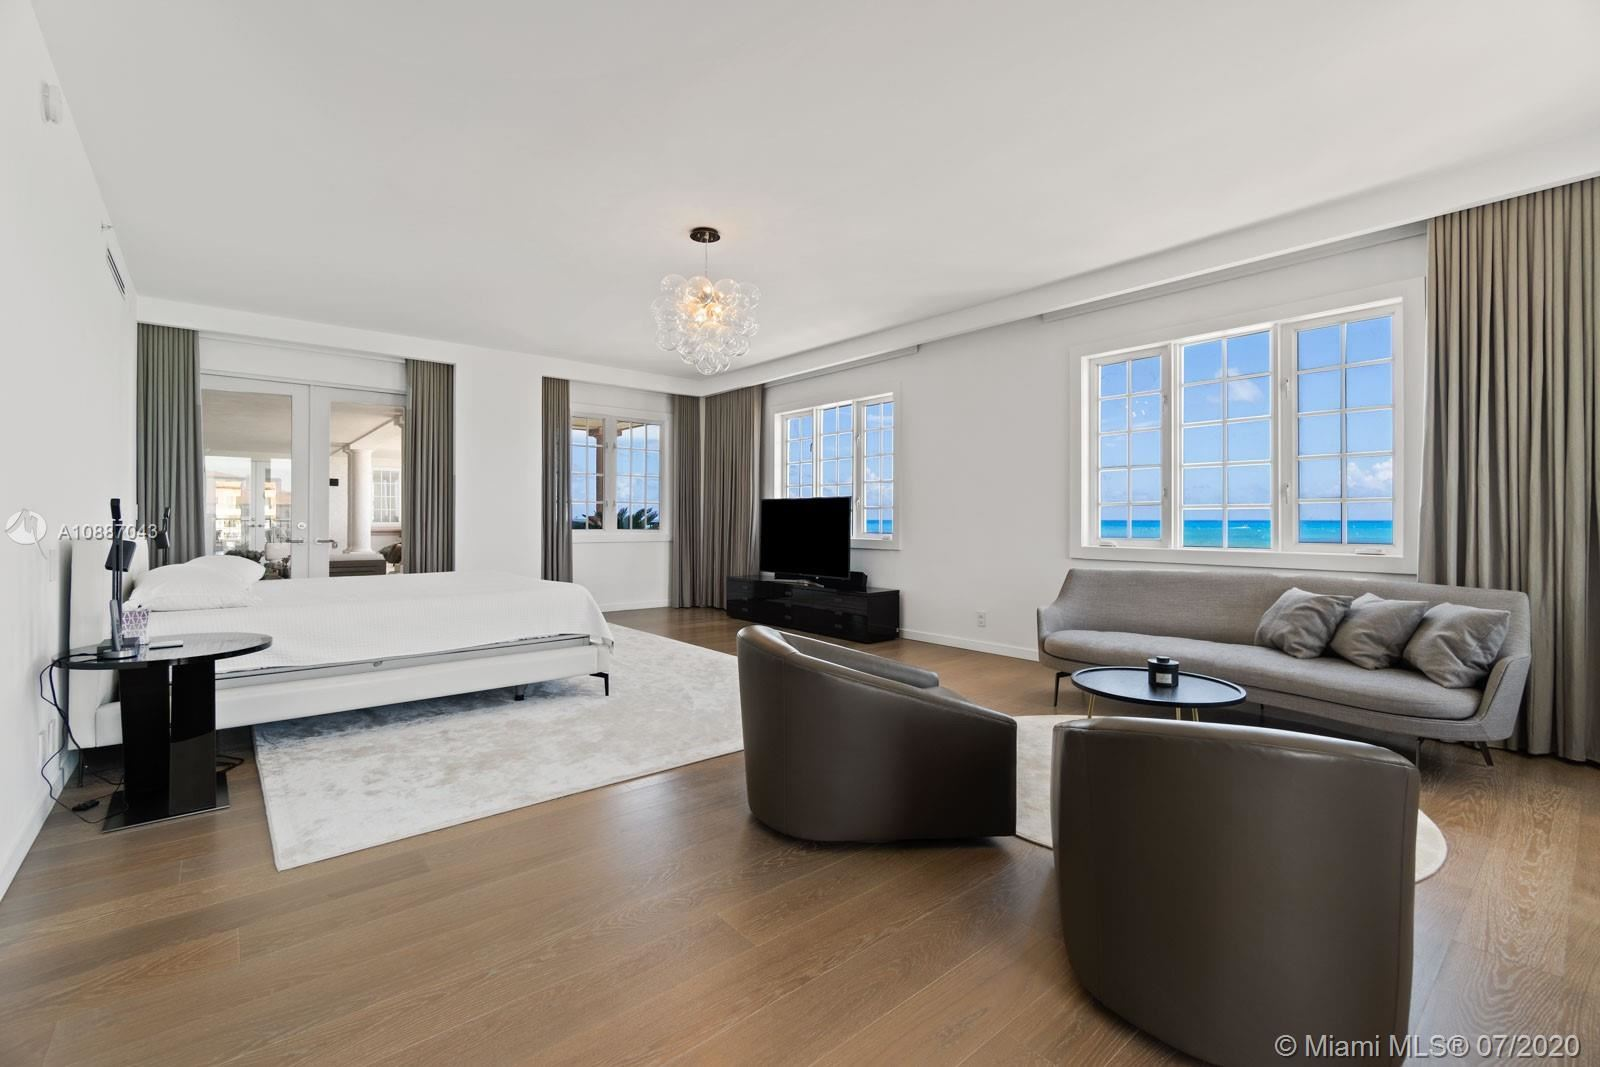 Photo 6 of Listing MLS a10887043 in 7764 Fisher Island Dr #7764 Miami Beach FL 33109